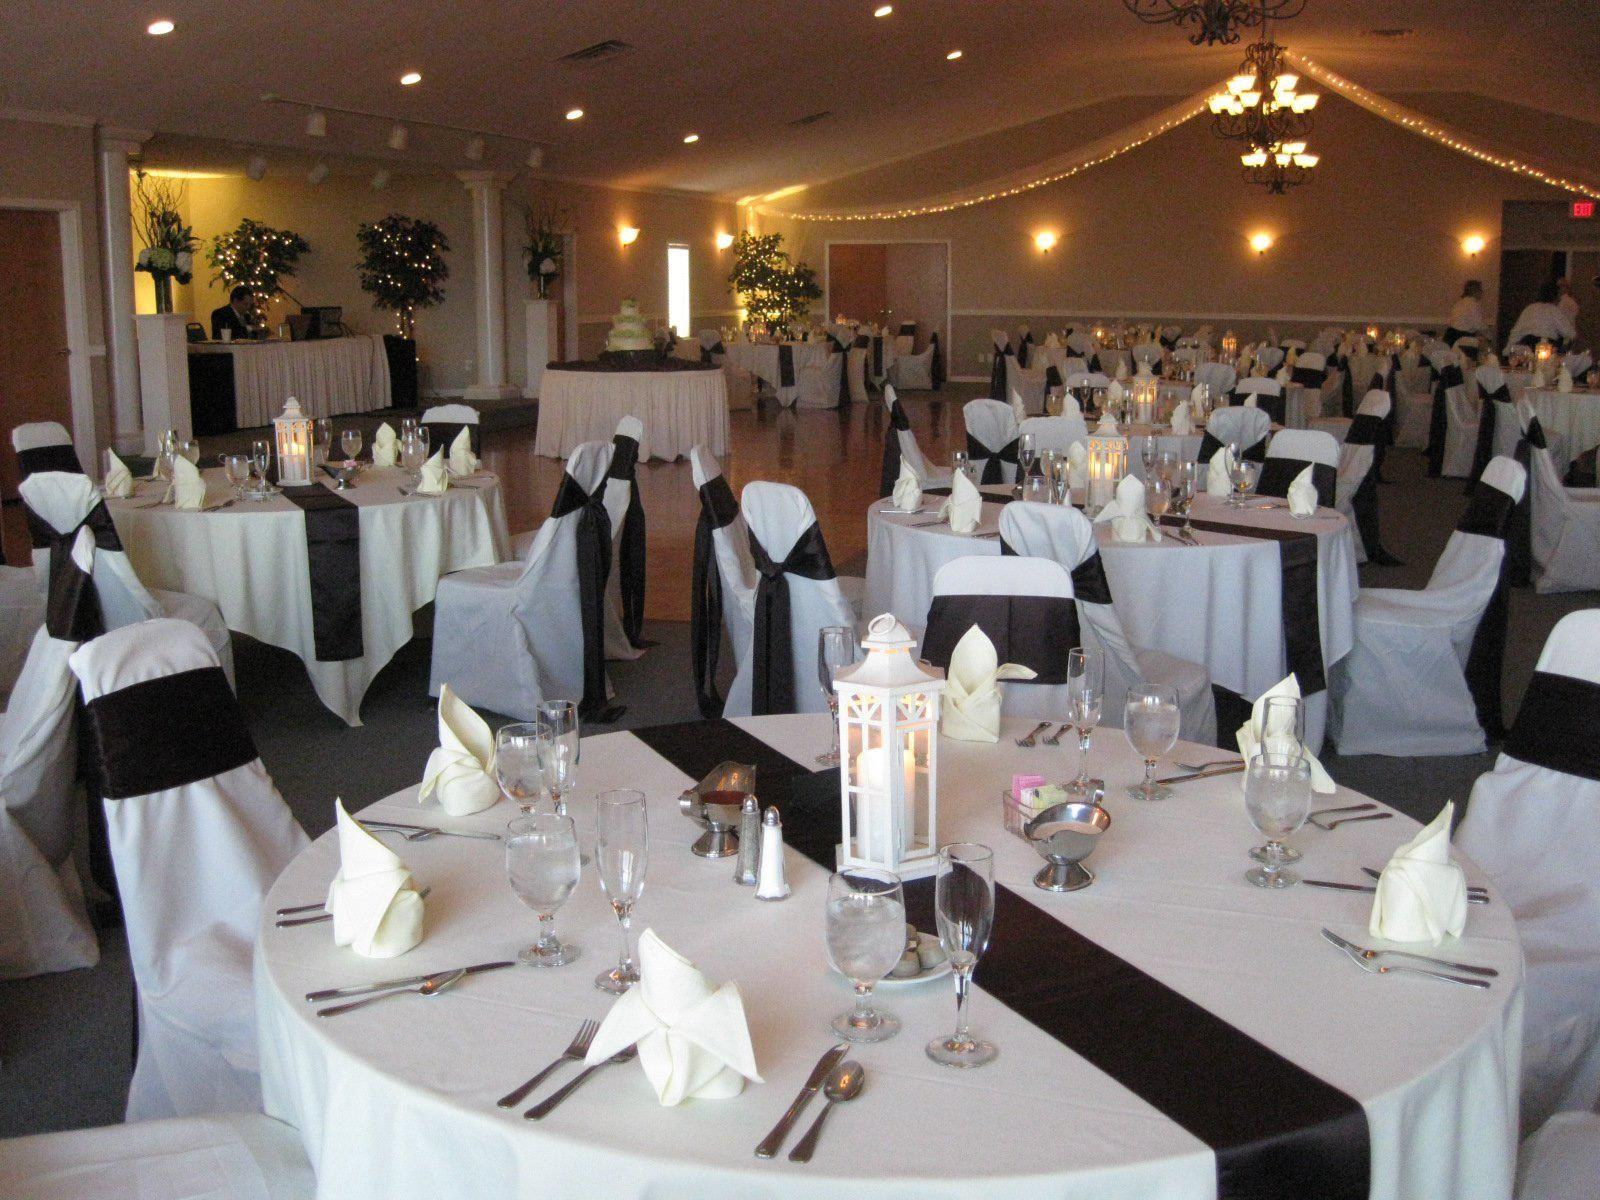 black satin table runner white chair covers black satin sash and